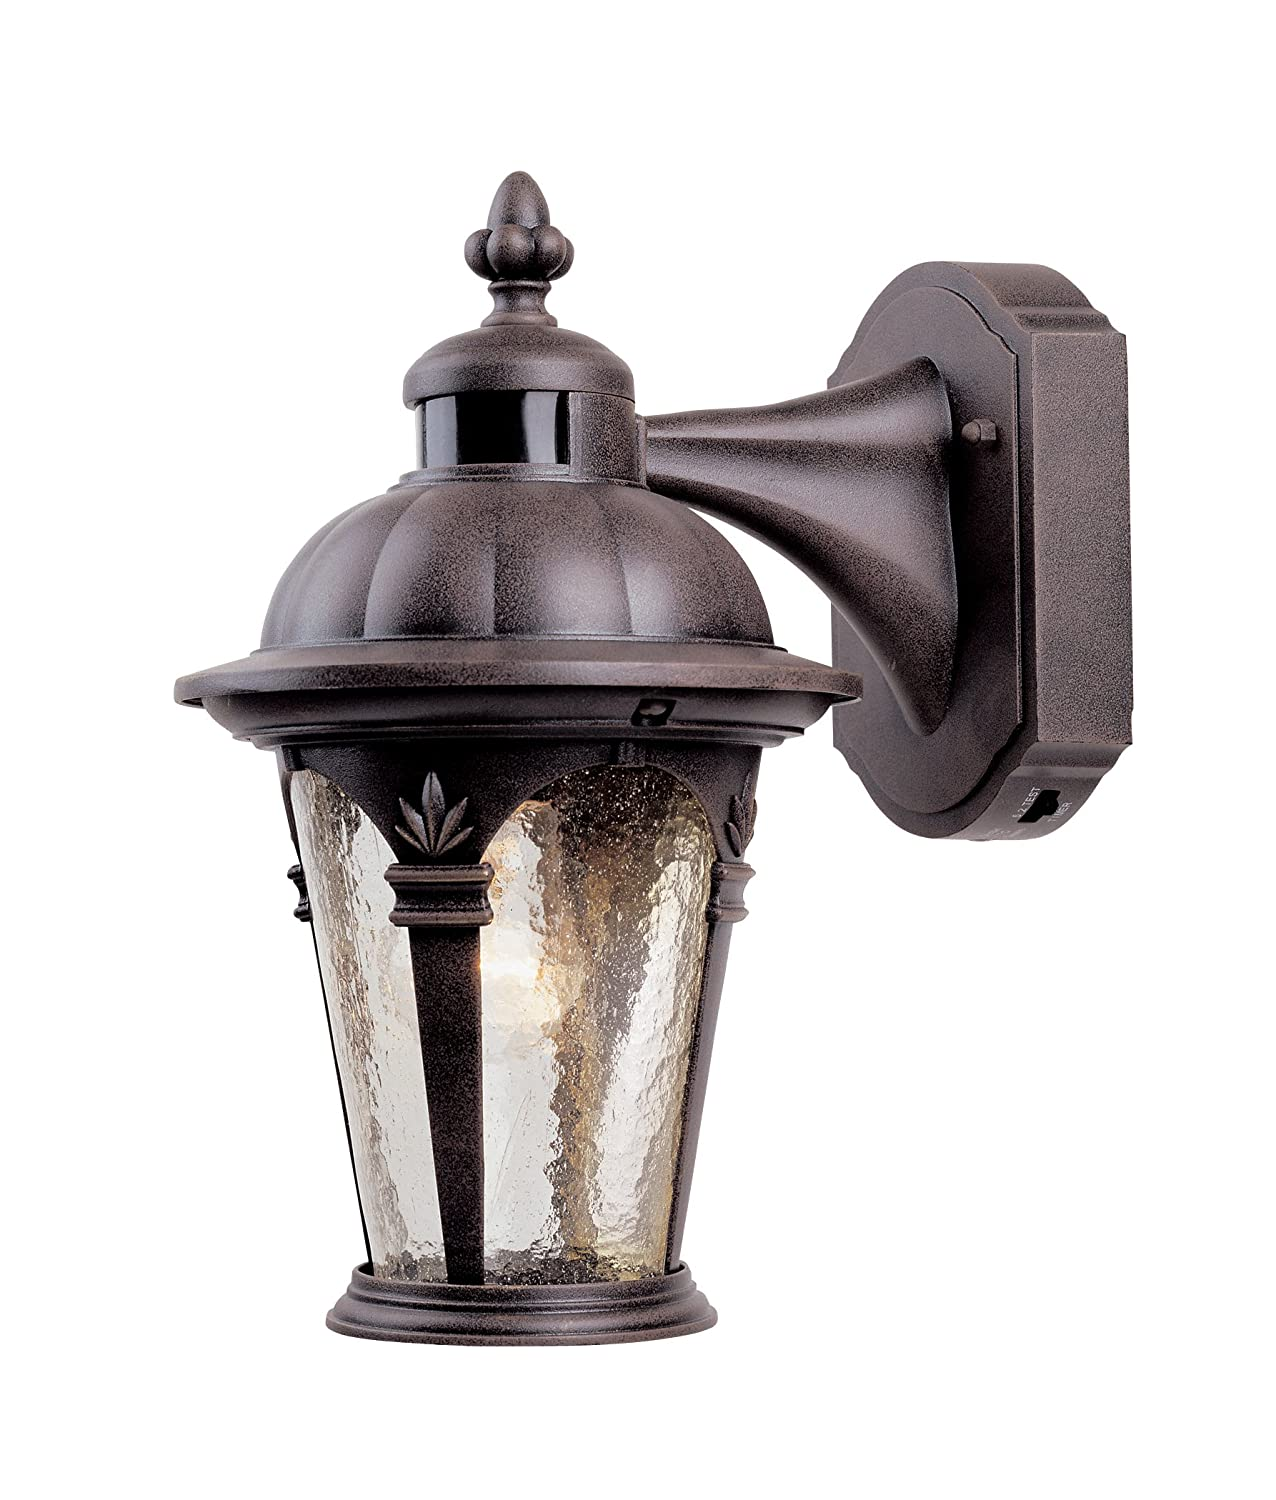 Designers fountain 2900md ag quintessence security lights autumn designers fountain 2900md ag quintessence security lights autumn gold wall porch lights amazon aloadofball Gallery